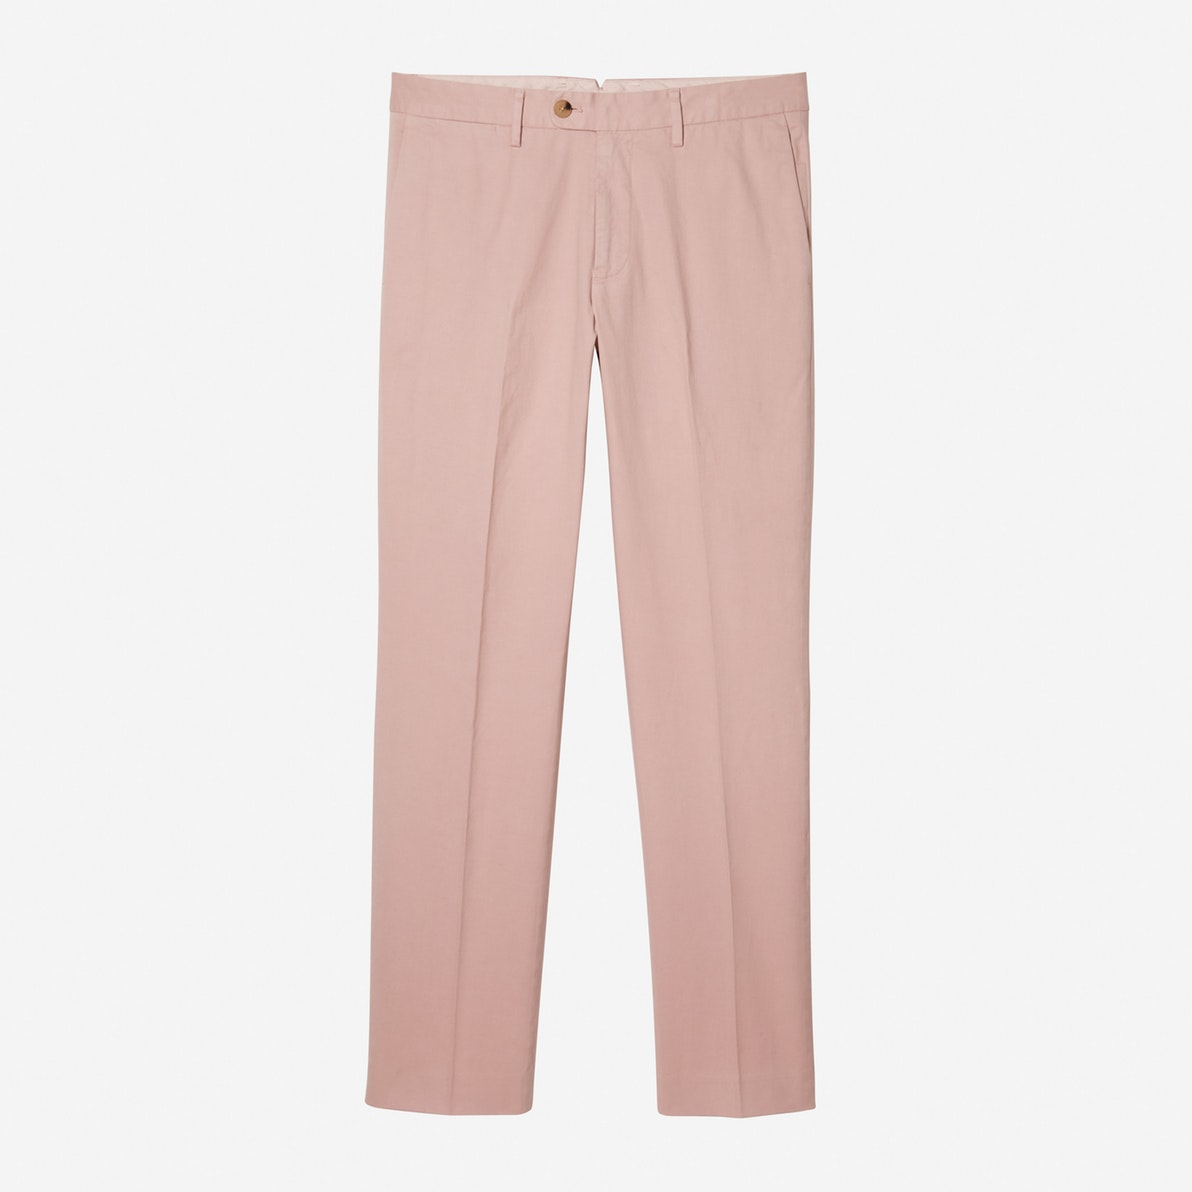 Pants_Premium-Chino_18381-PPL20_40_category-outfitter.jpg